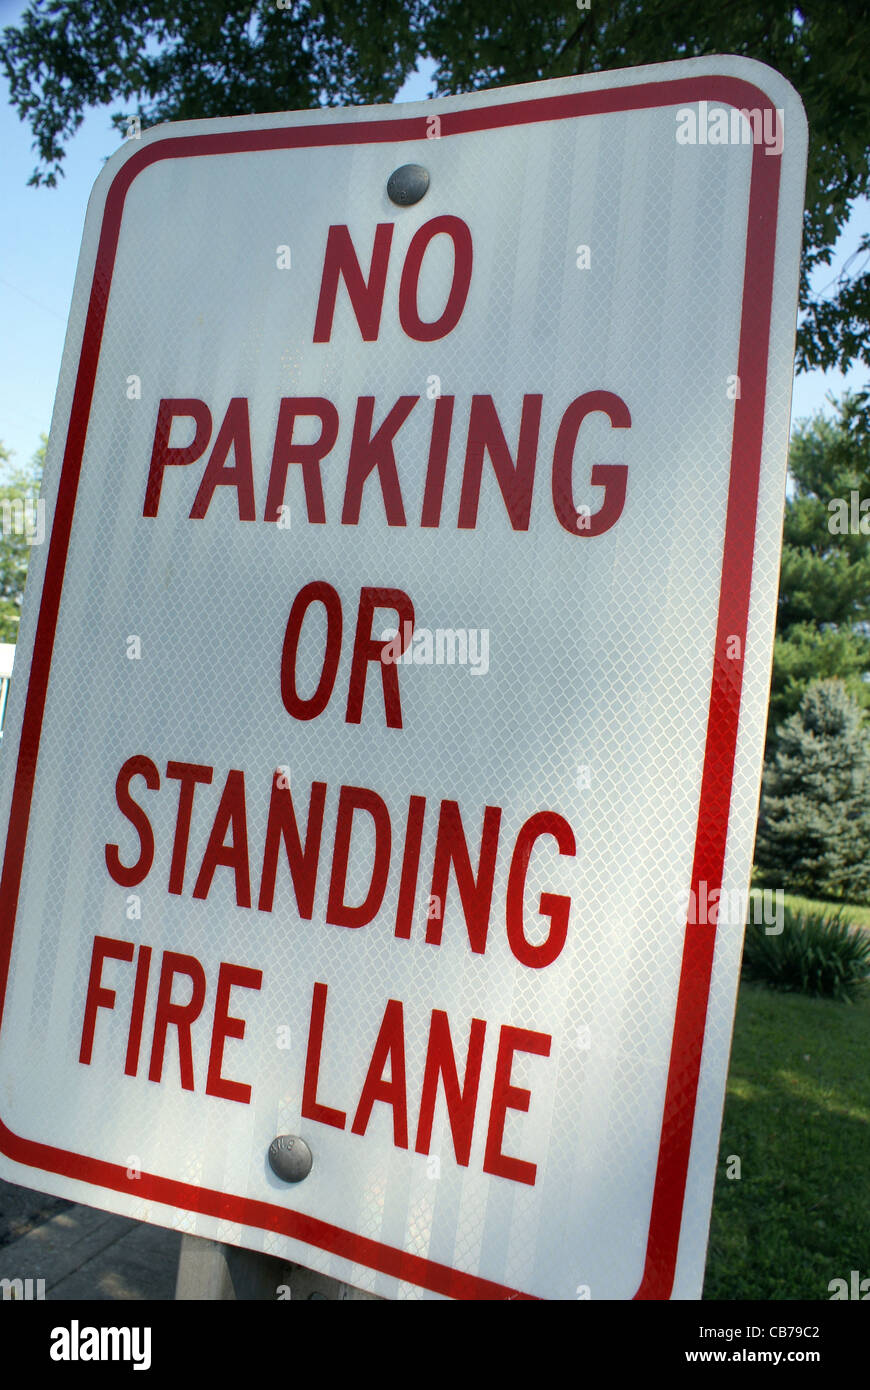 No parking sign, because of being a fire lane. - Stock Image